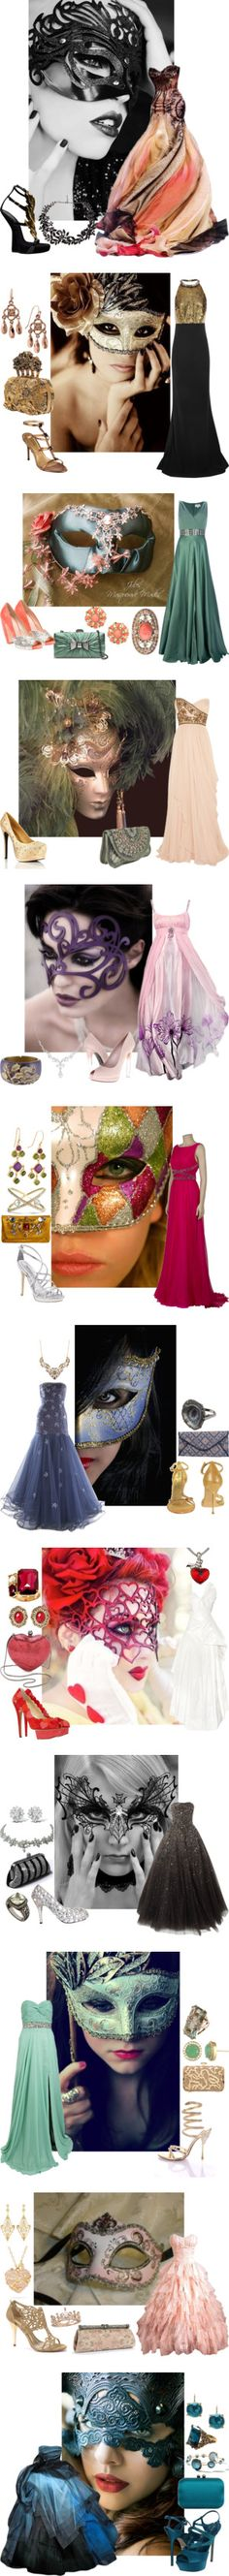 """""""Masquerade Ball"""" by eclare887 on Polyvore"""